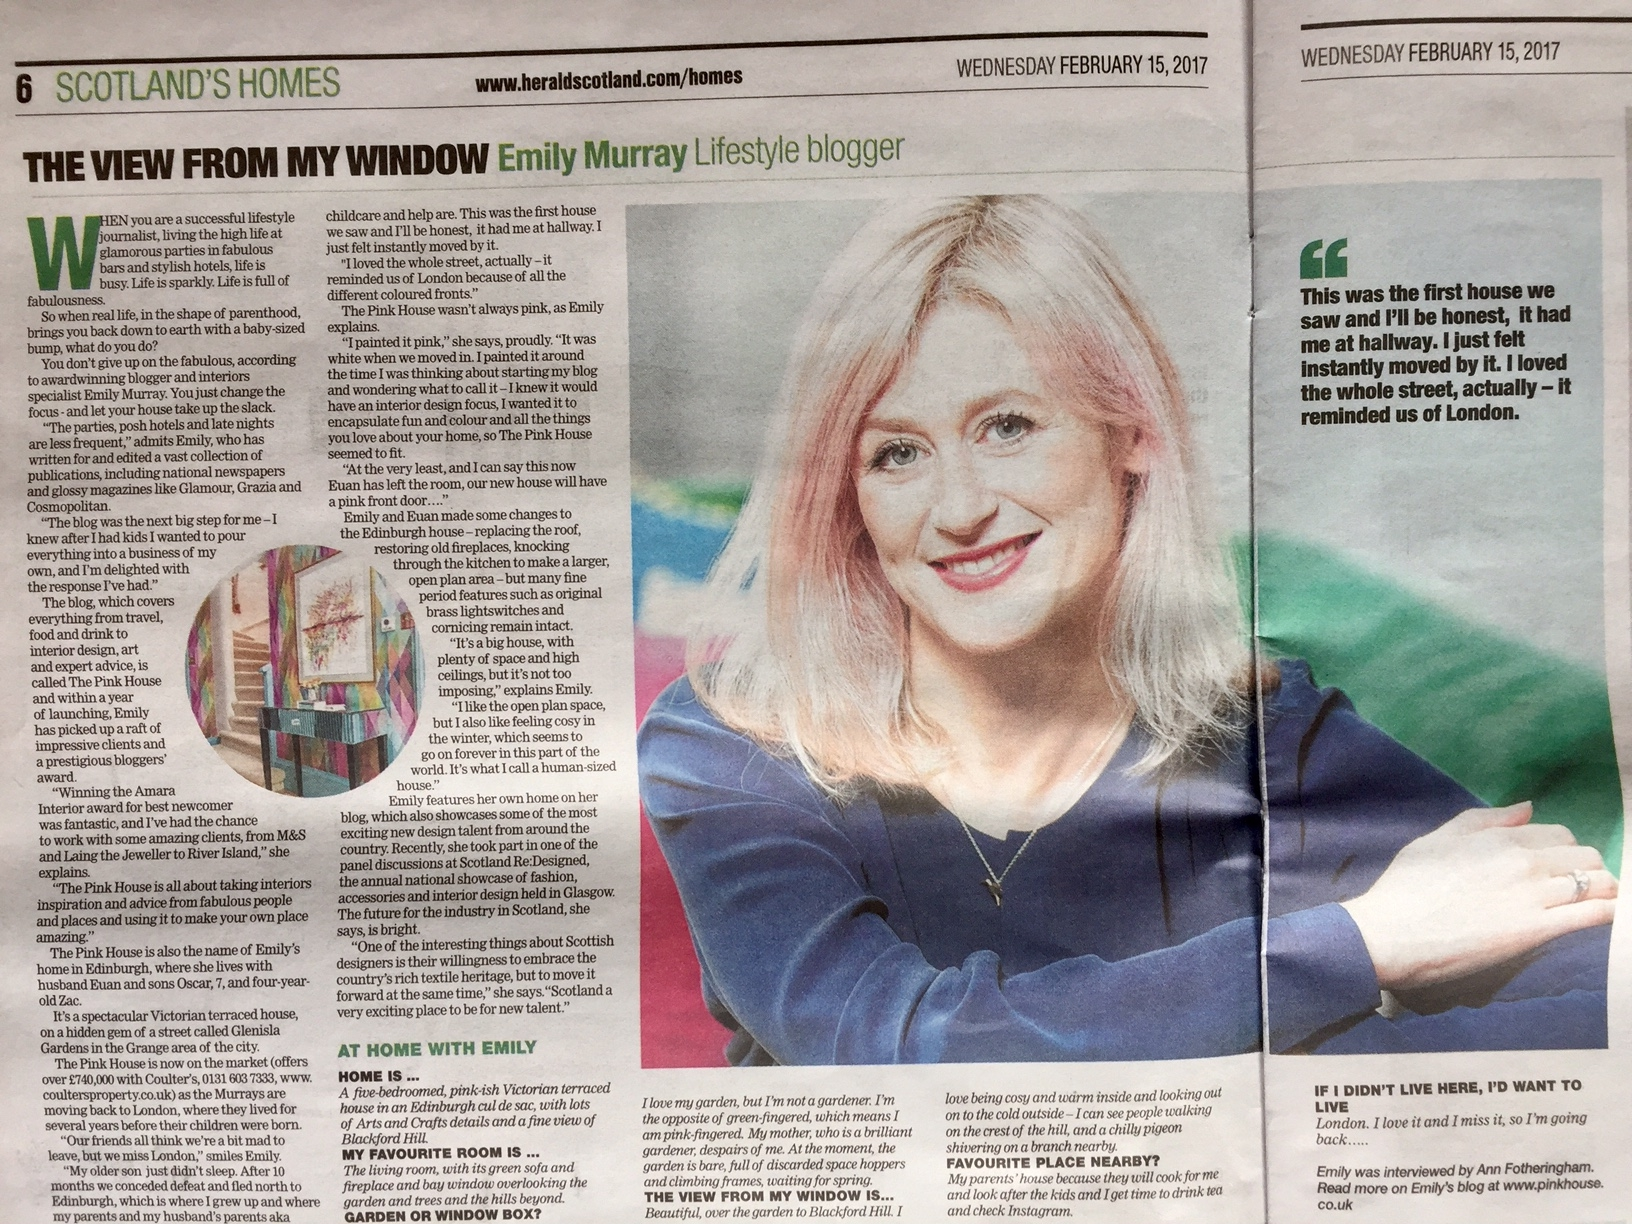 Emily Murray from The Pink House in The View From My Window in The Herald Scotland